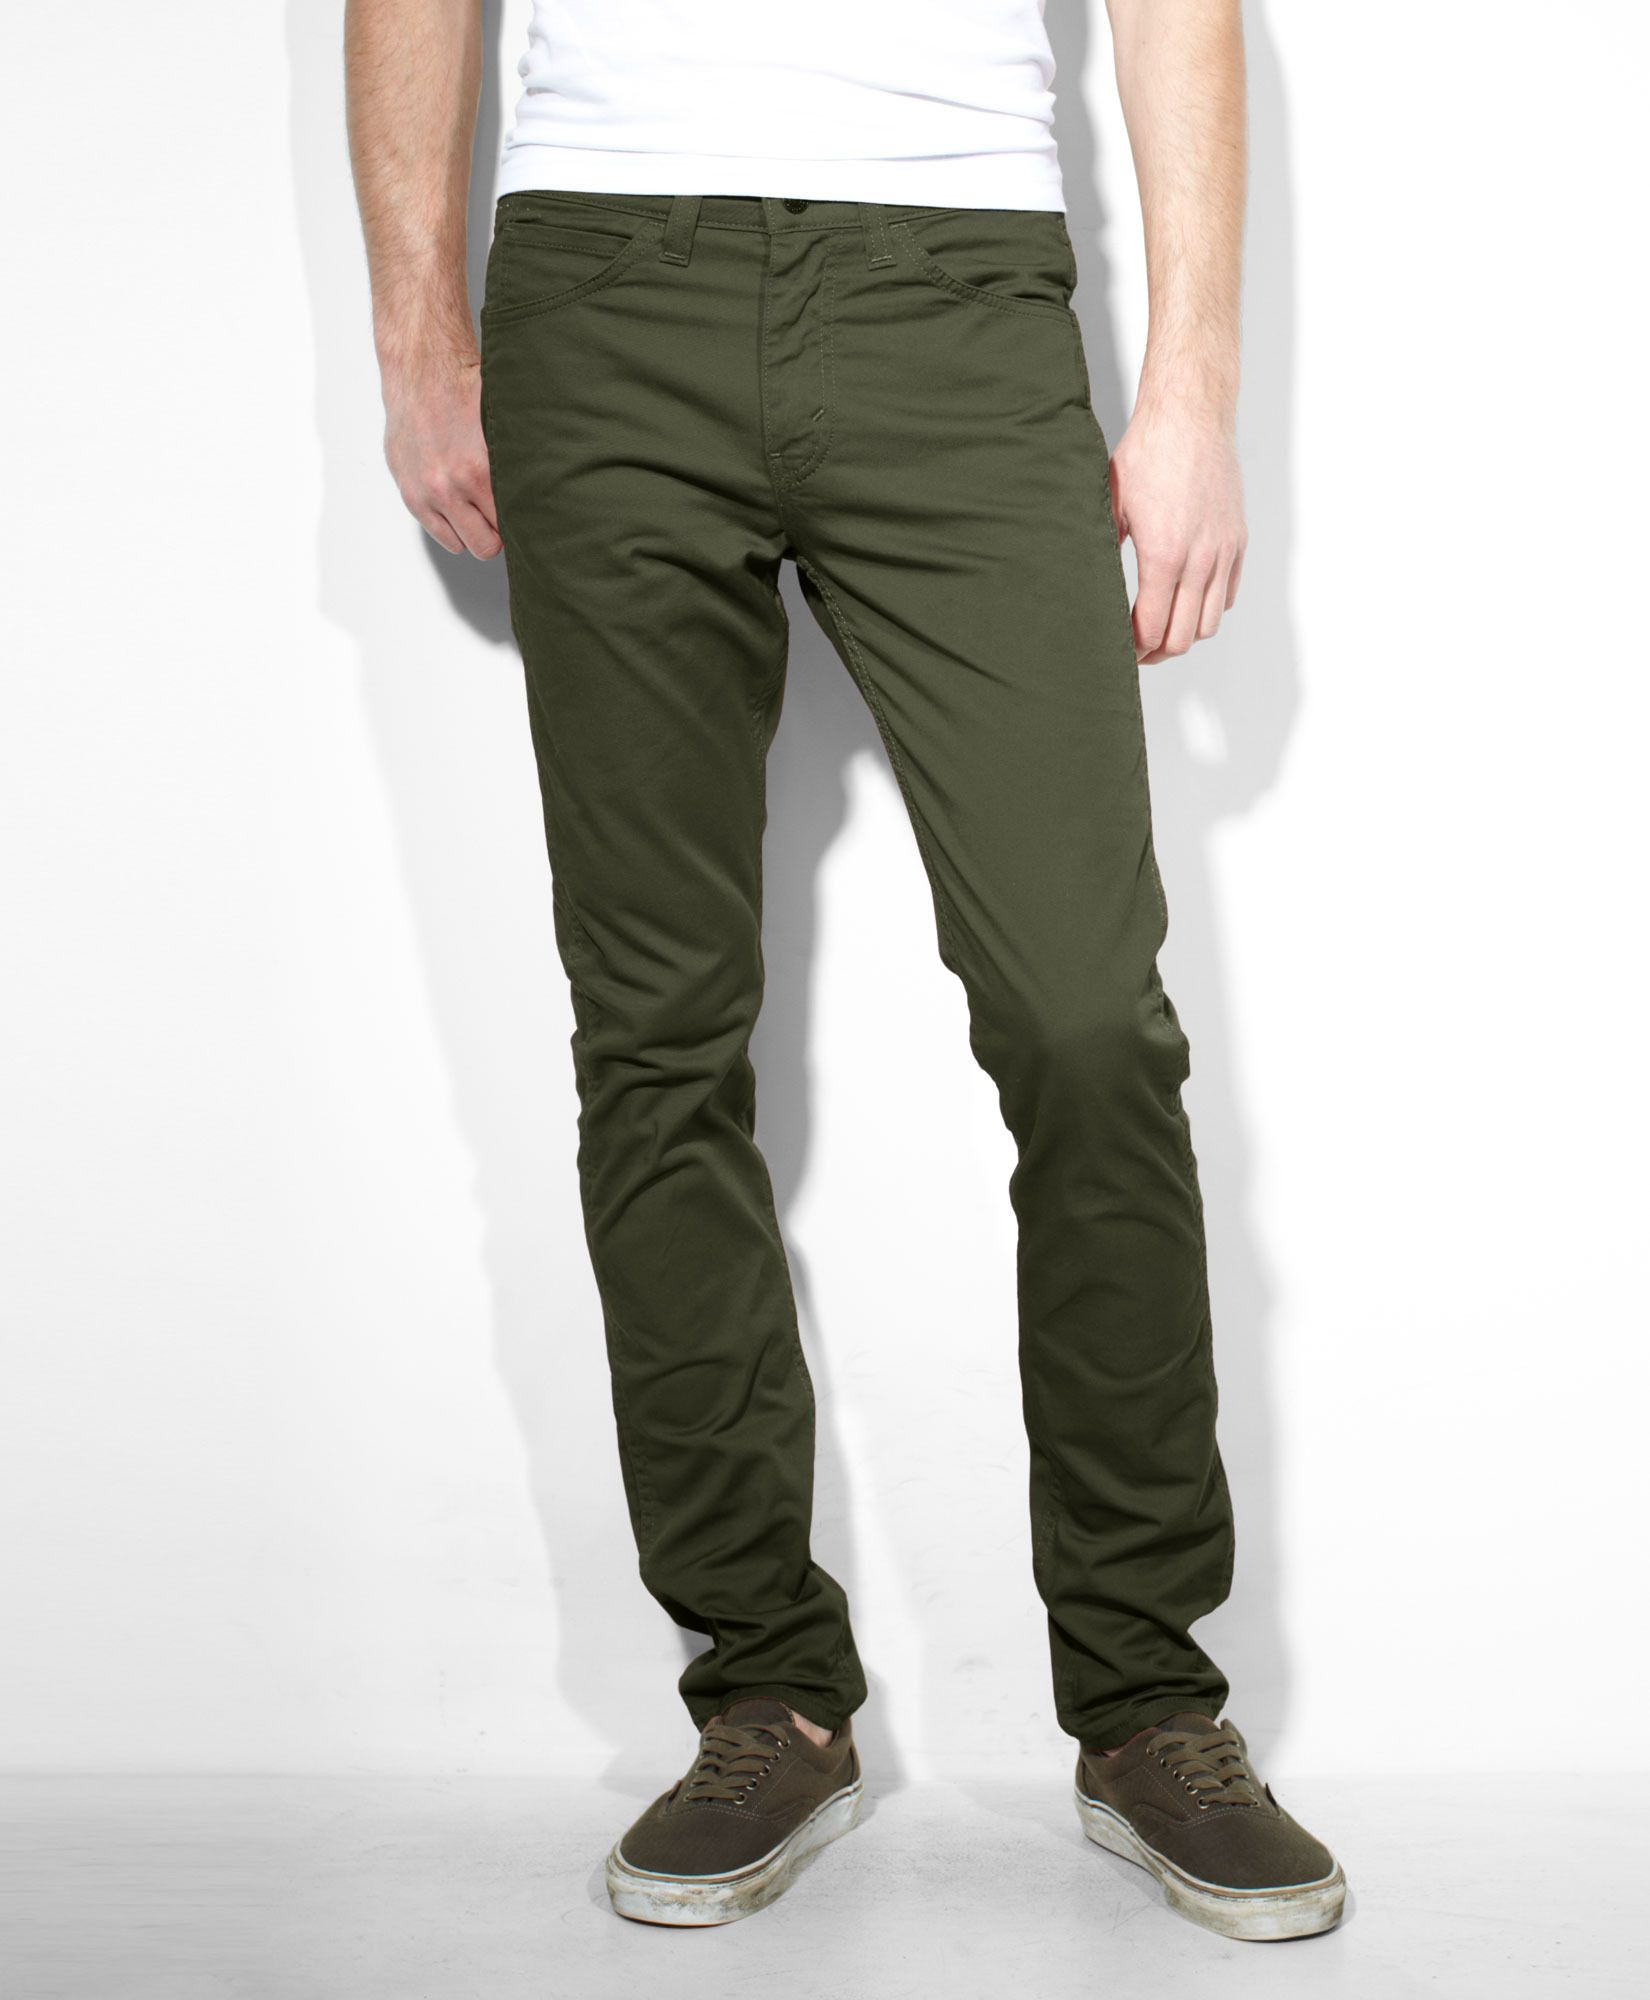 a9b51a65c Levi's 510™ Line 8 Pants - Forest Night | Wrinkled Clothes | Pants ...